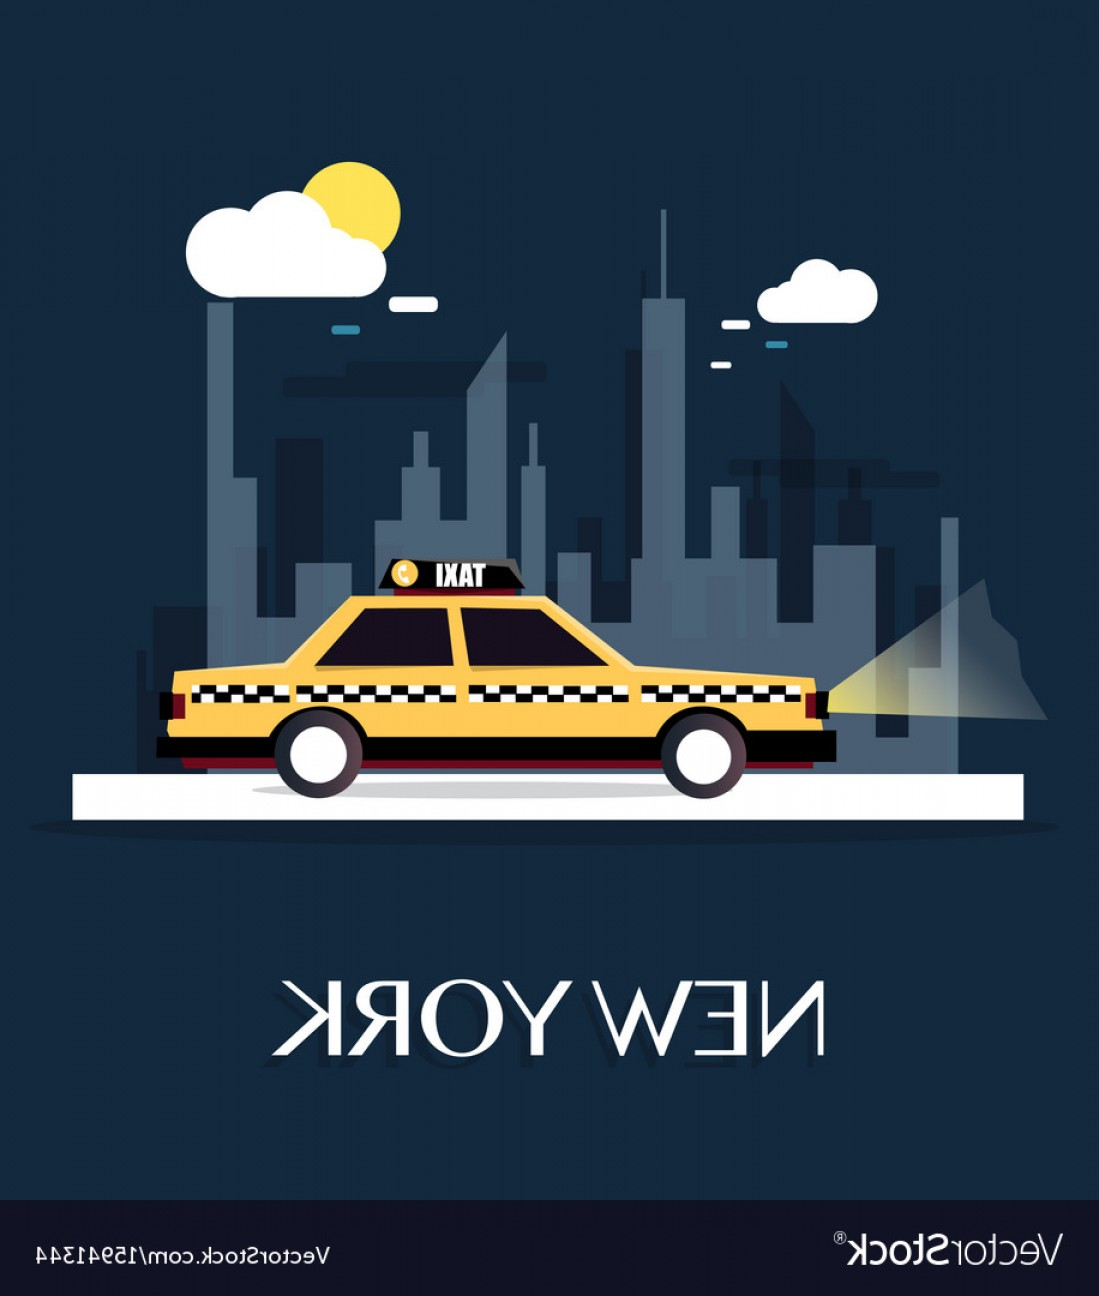 New York Taxi Cab Vector: Taxi Car With New York City Vector